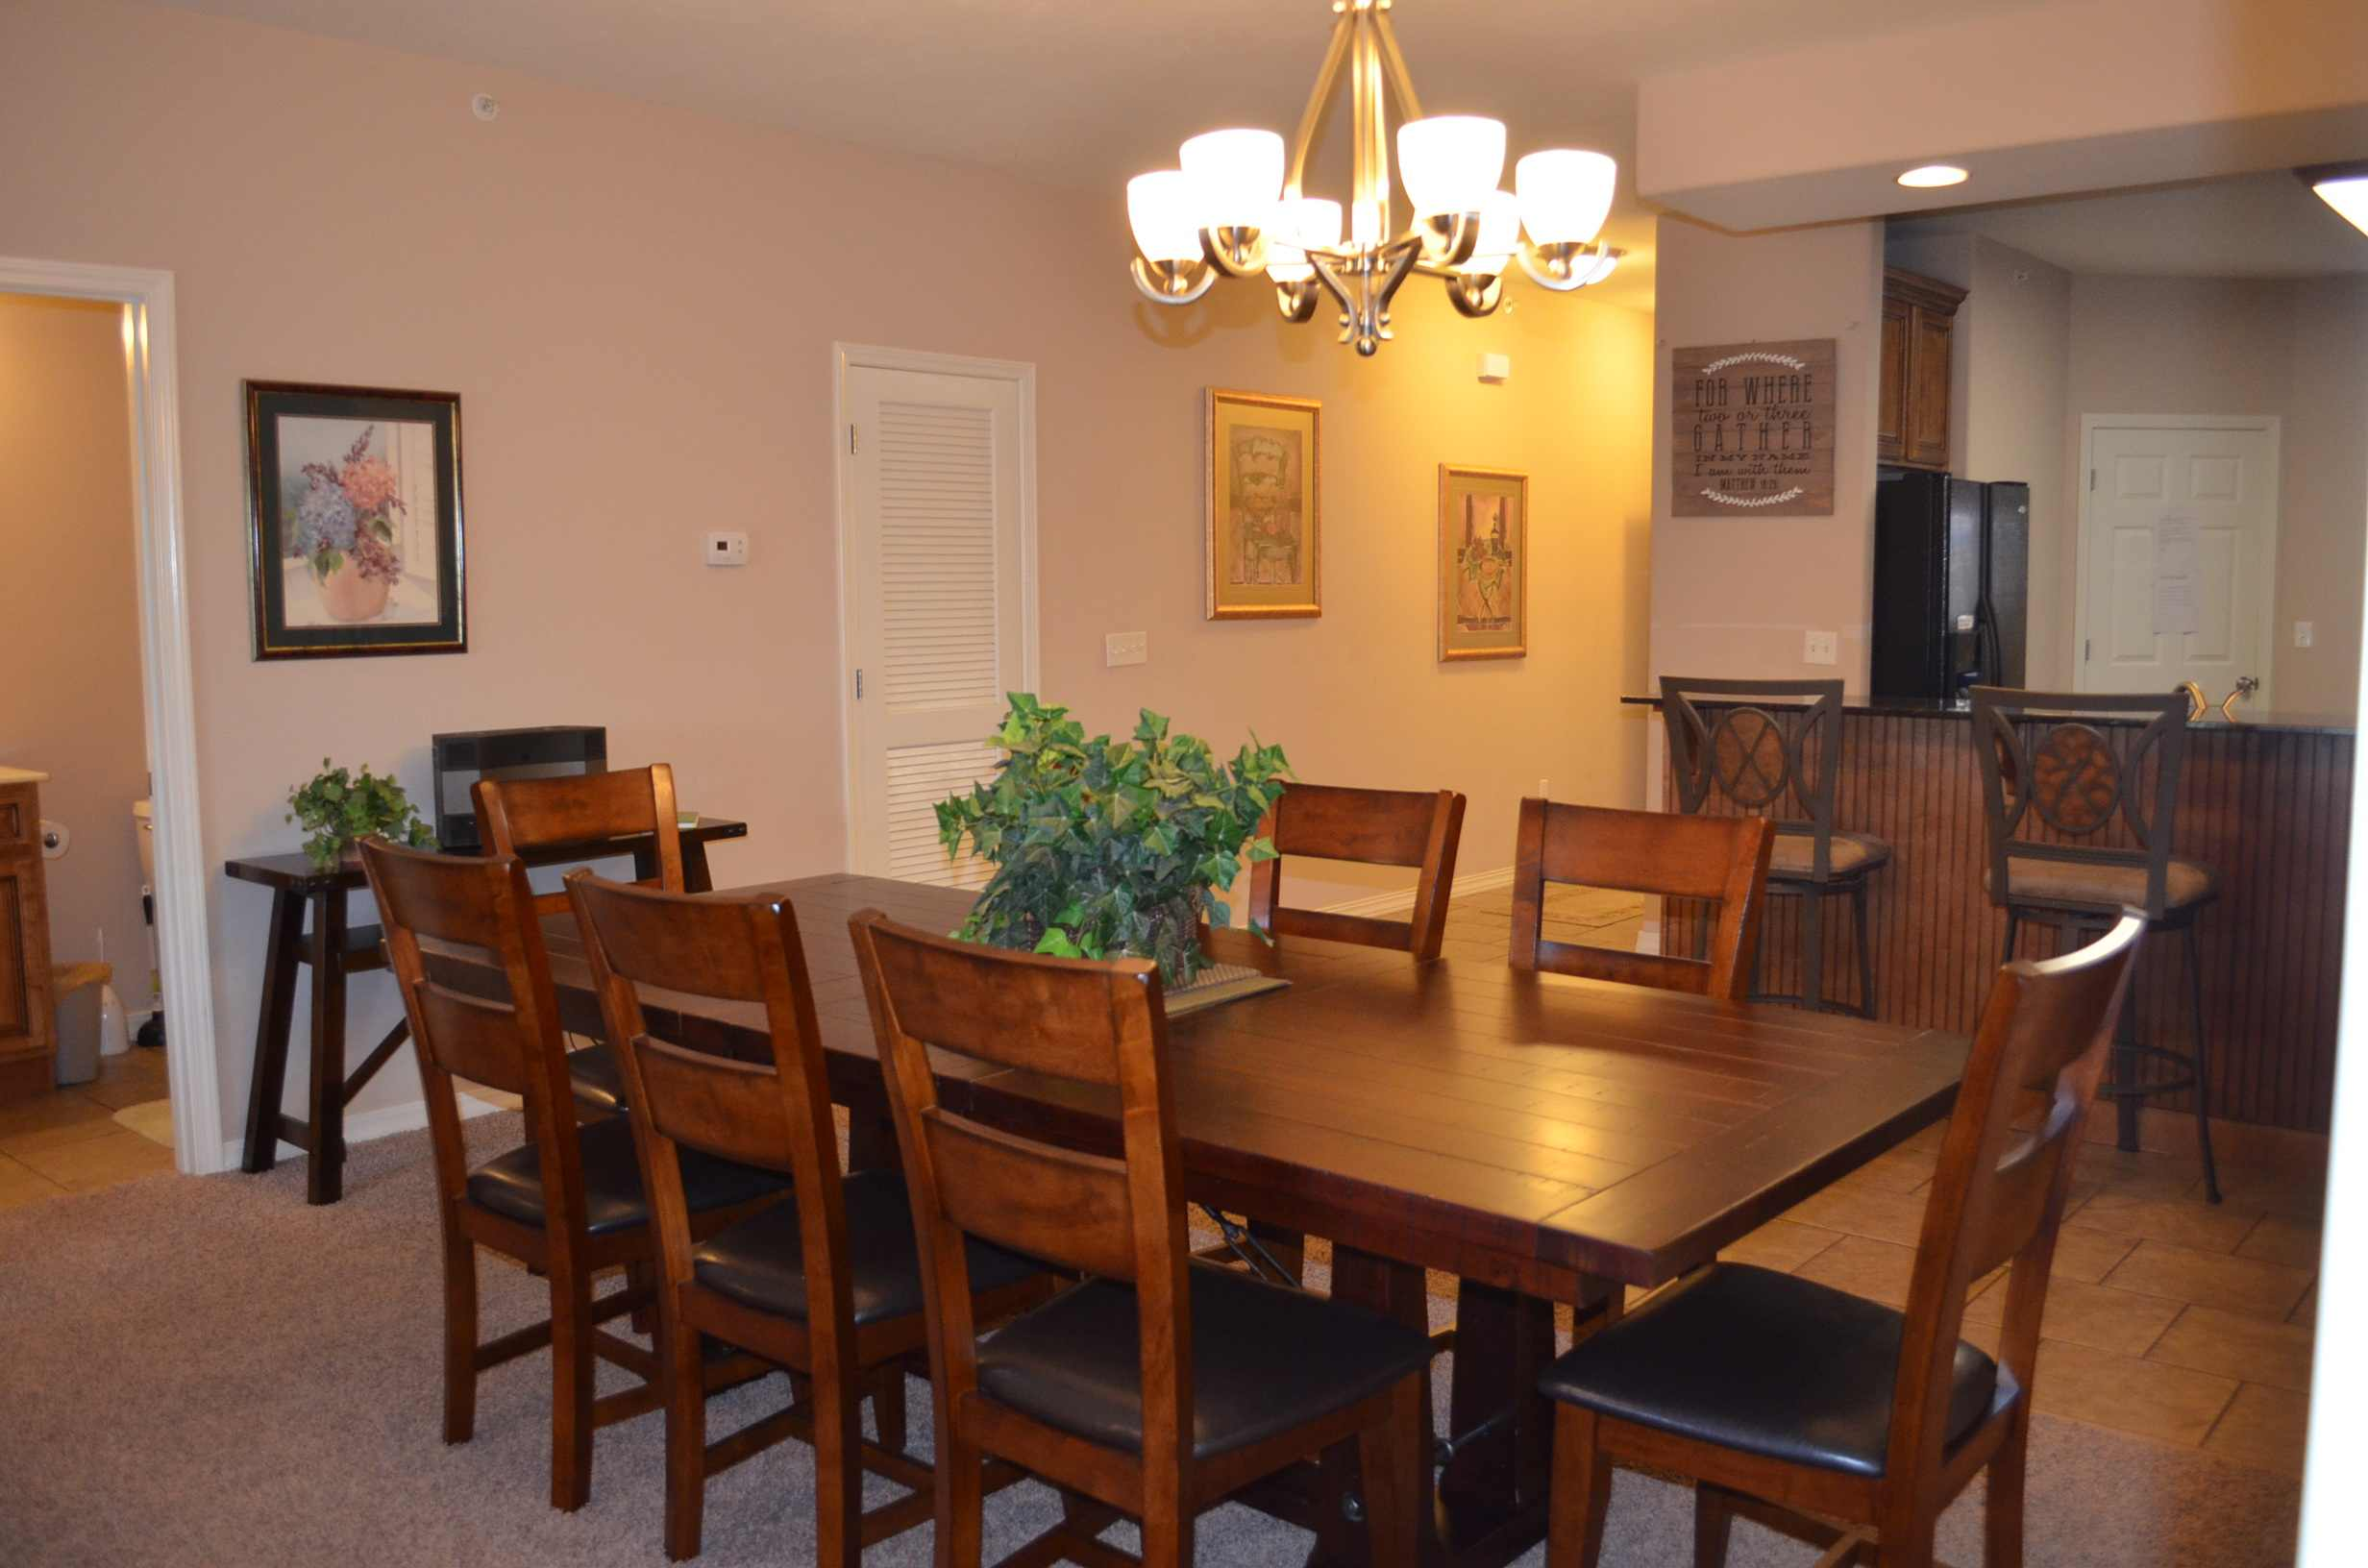 8-person-dining-table